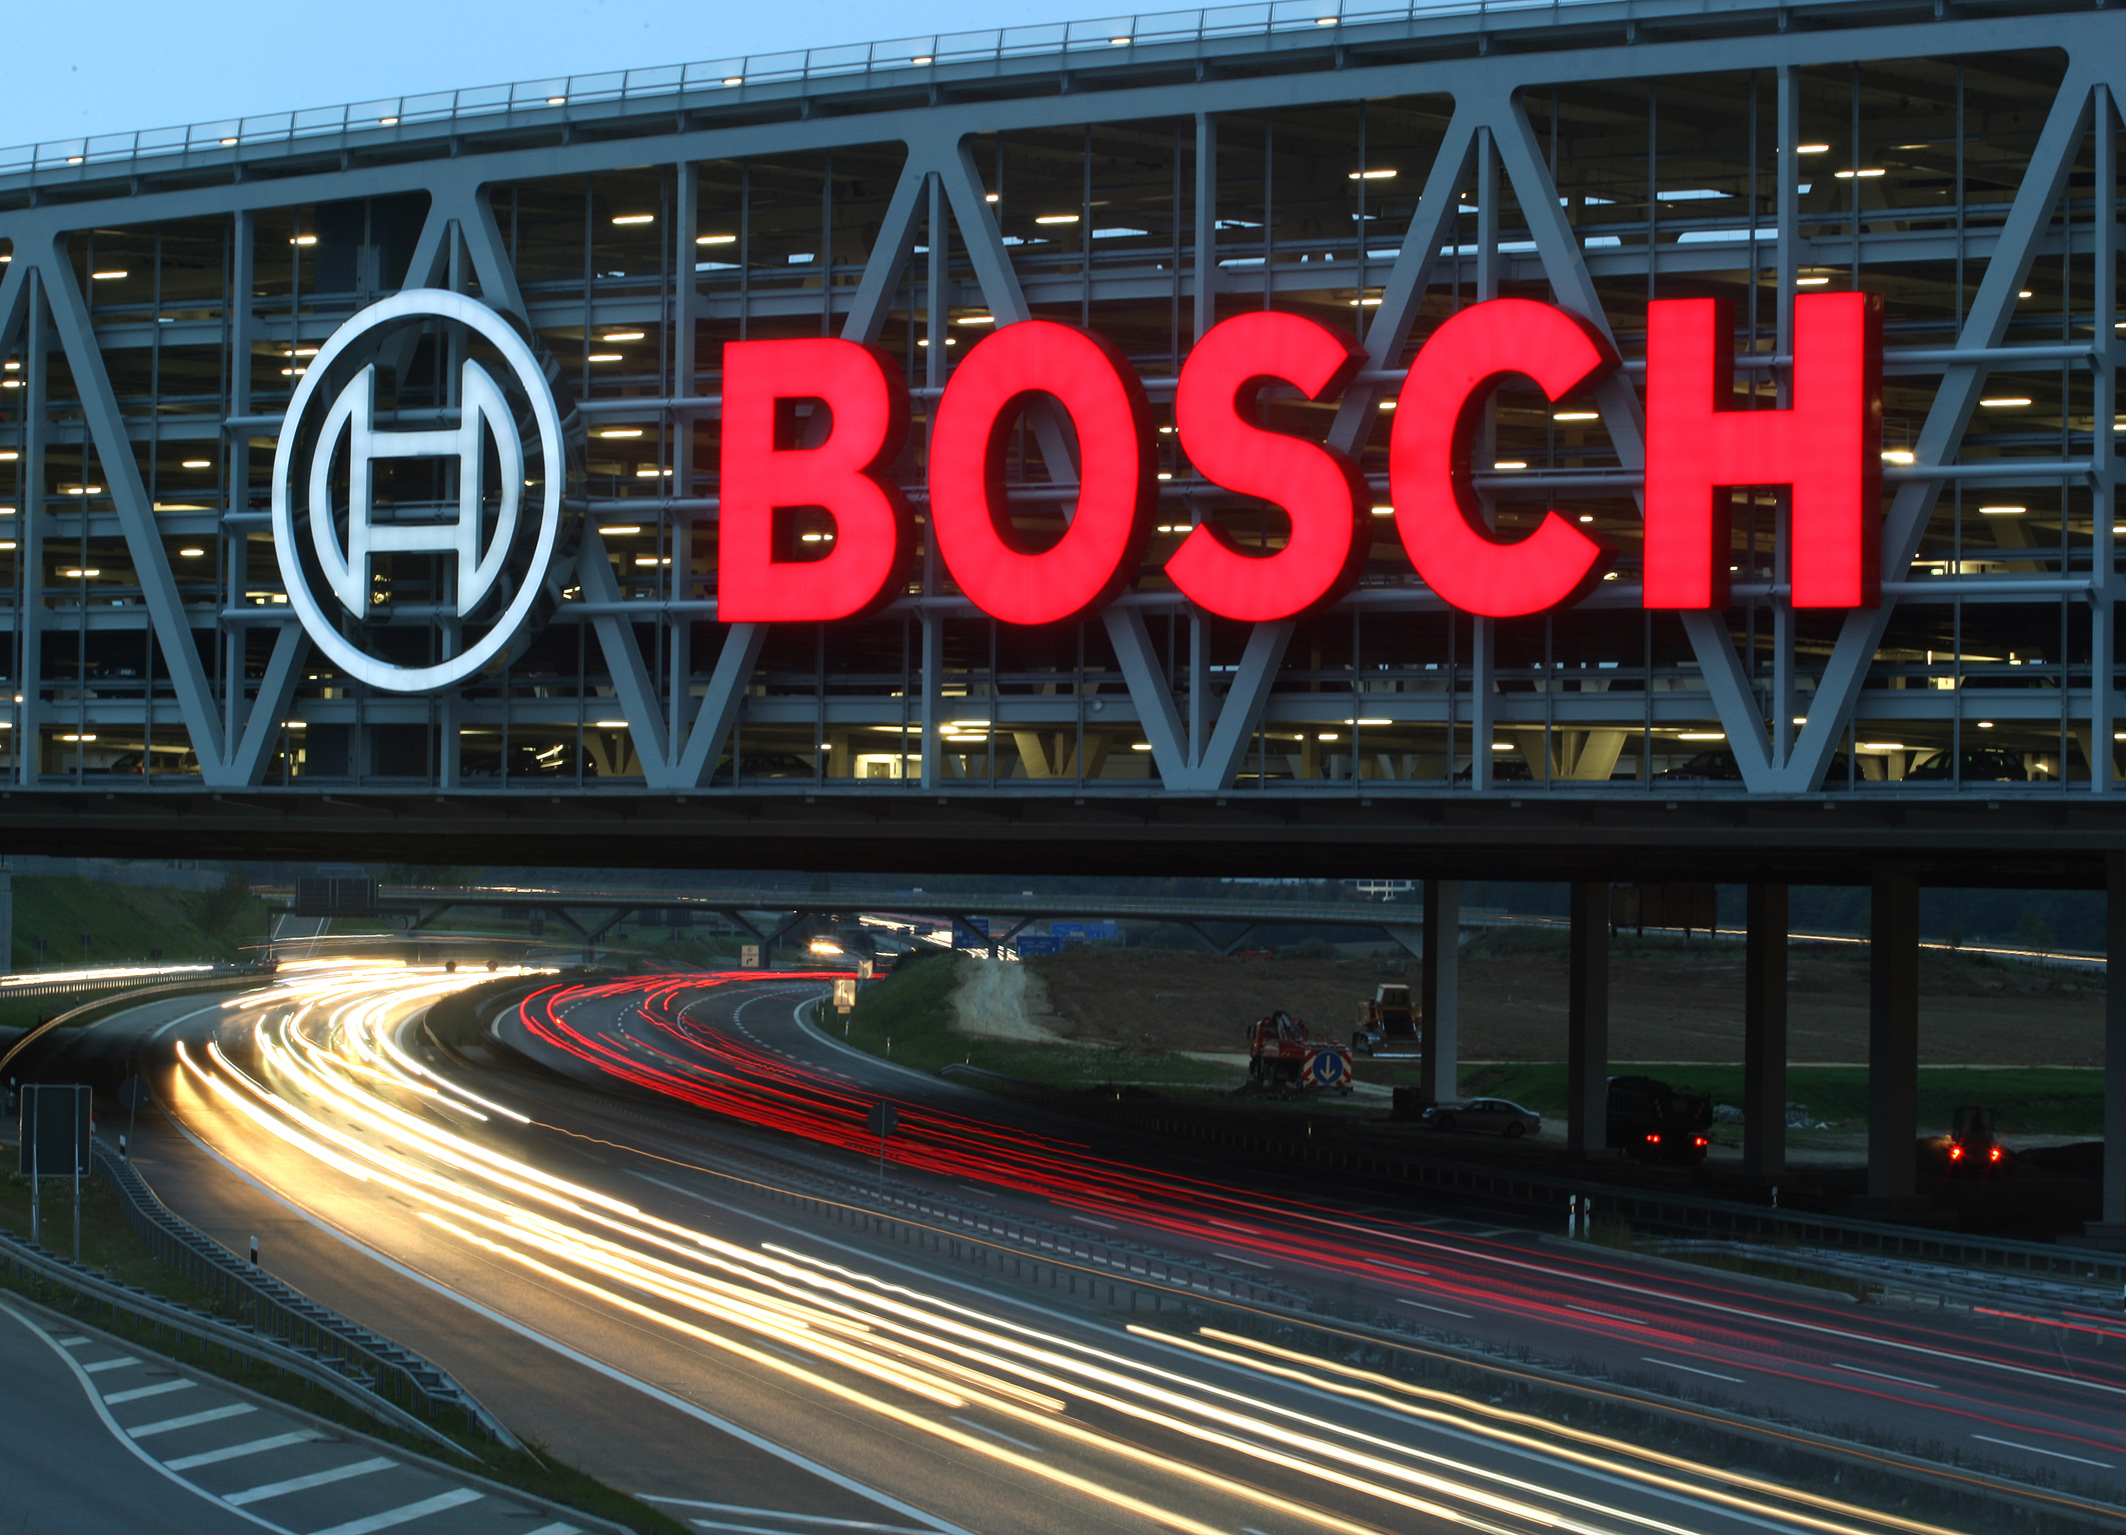 Bosch named the 'most admired' motor parts manufacturer by Fortune magazine-March 20, 2012-bosch.jpg